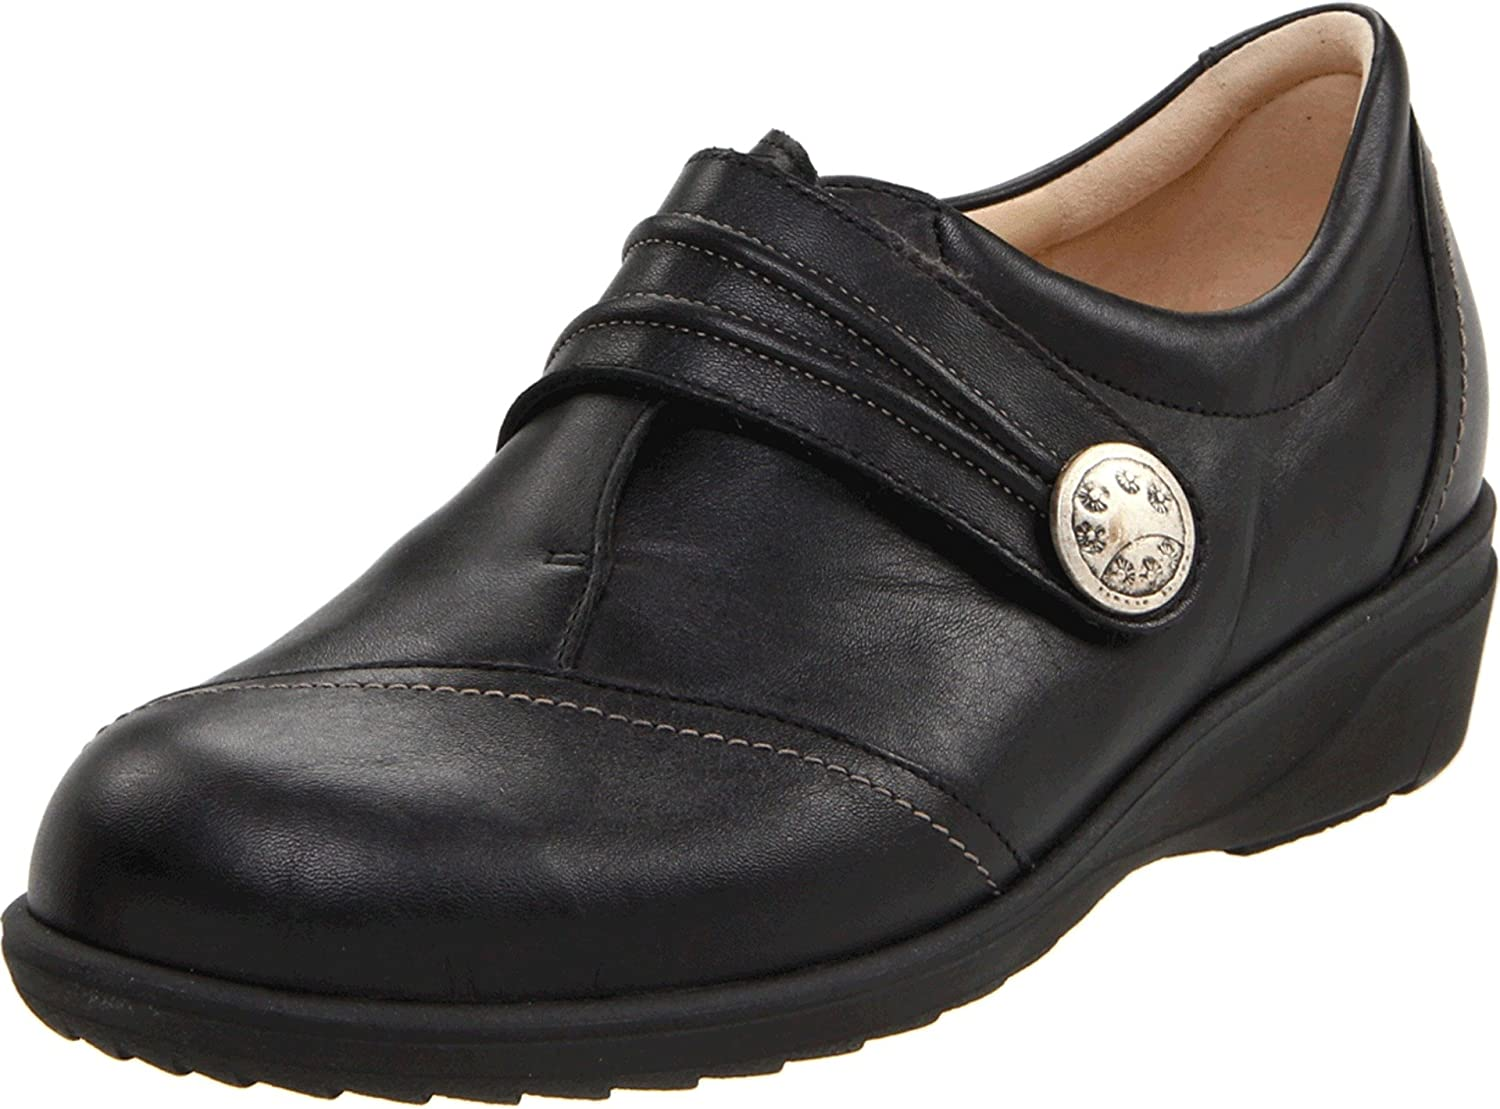 Finn Comfort Women's Galway - 2188 Slip-On B00595DQIY UK 2 /4.5 B (M)US|Black